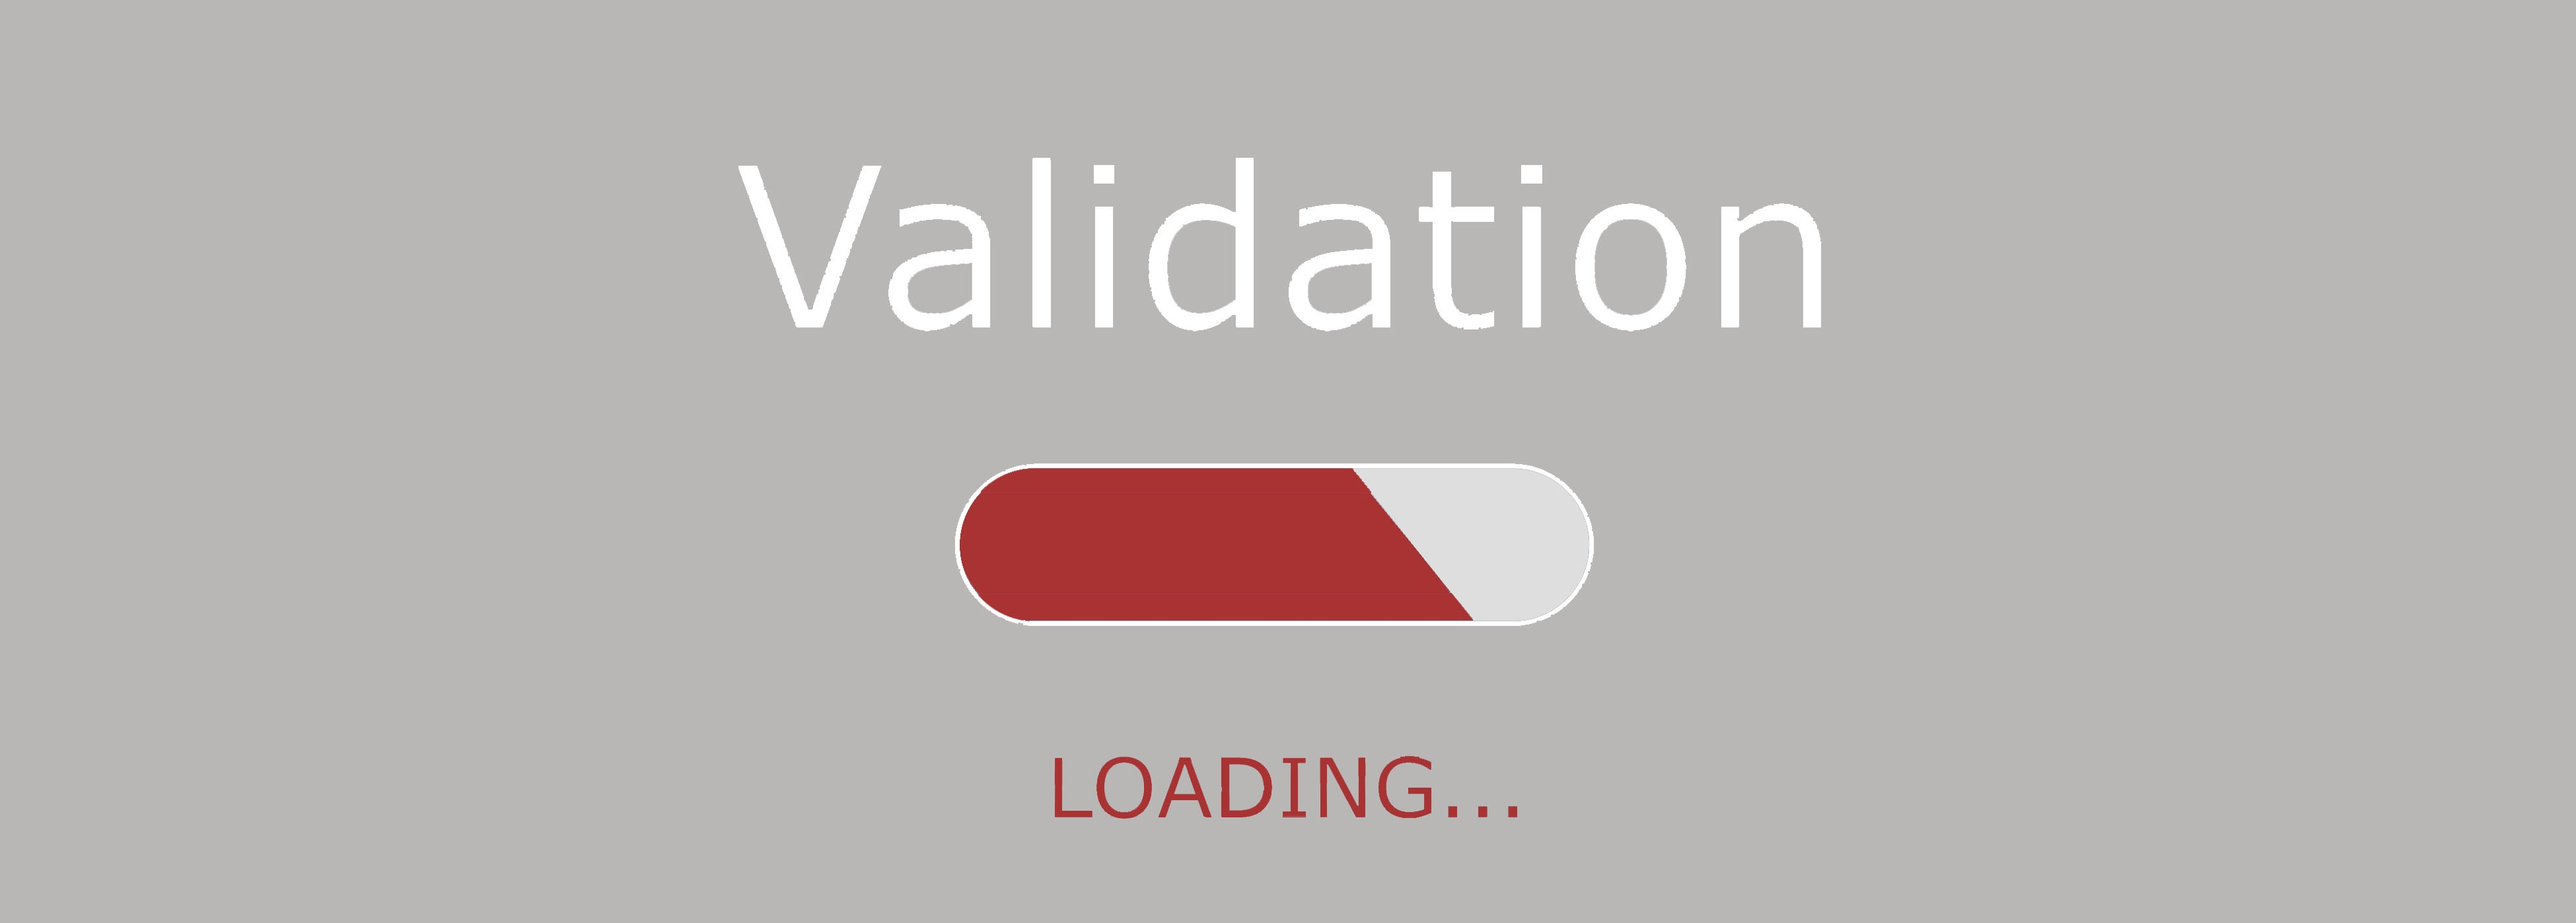 Symfony Validation Trick: Dependent Validation - Vlad